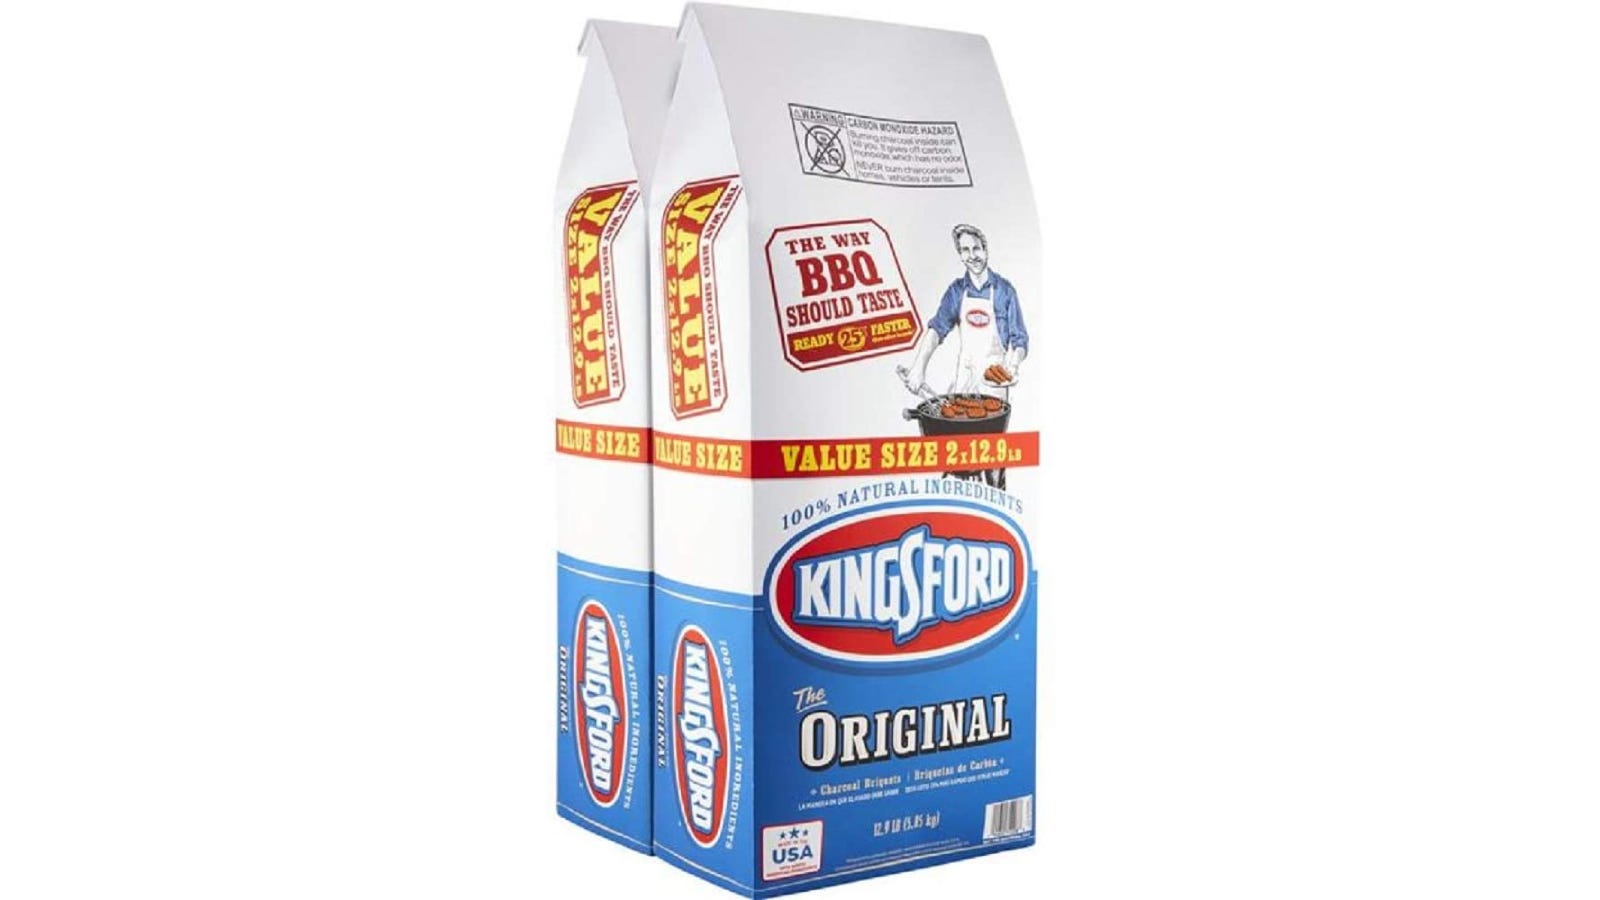 Two bags of Kingsford original charcoal.